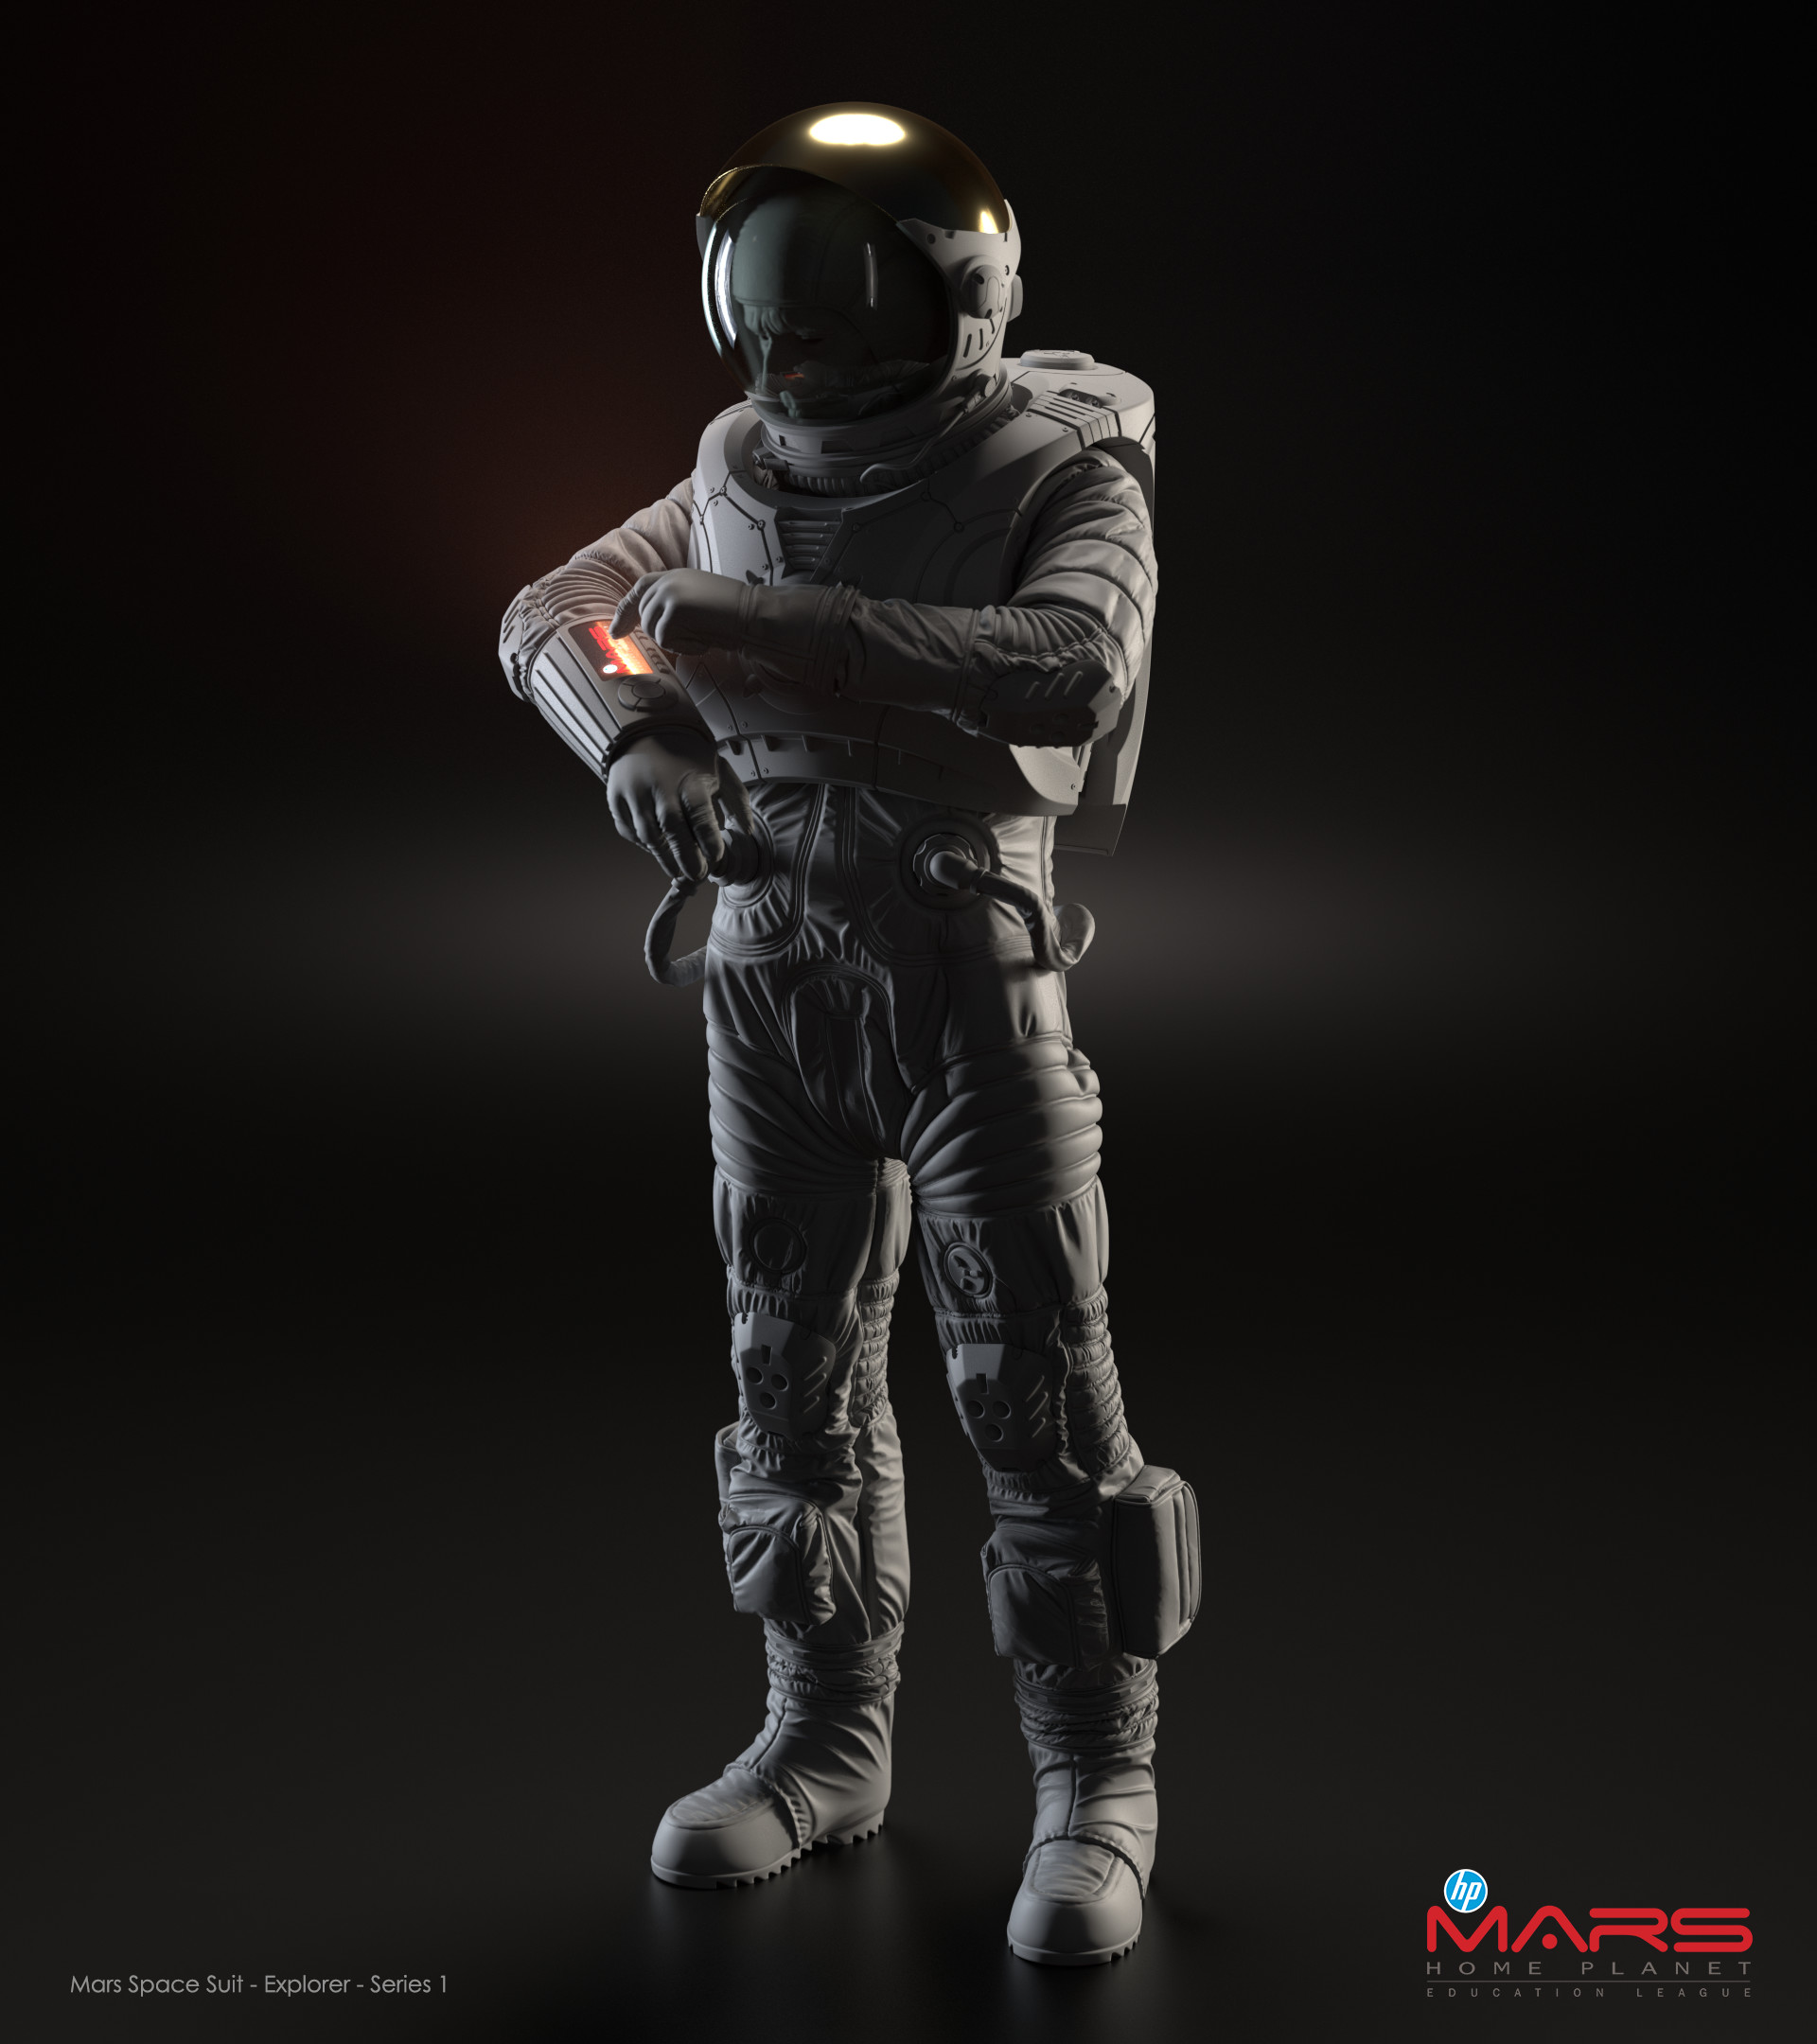 Jesus bibian jr spacesuit explorerseries 01